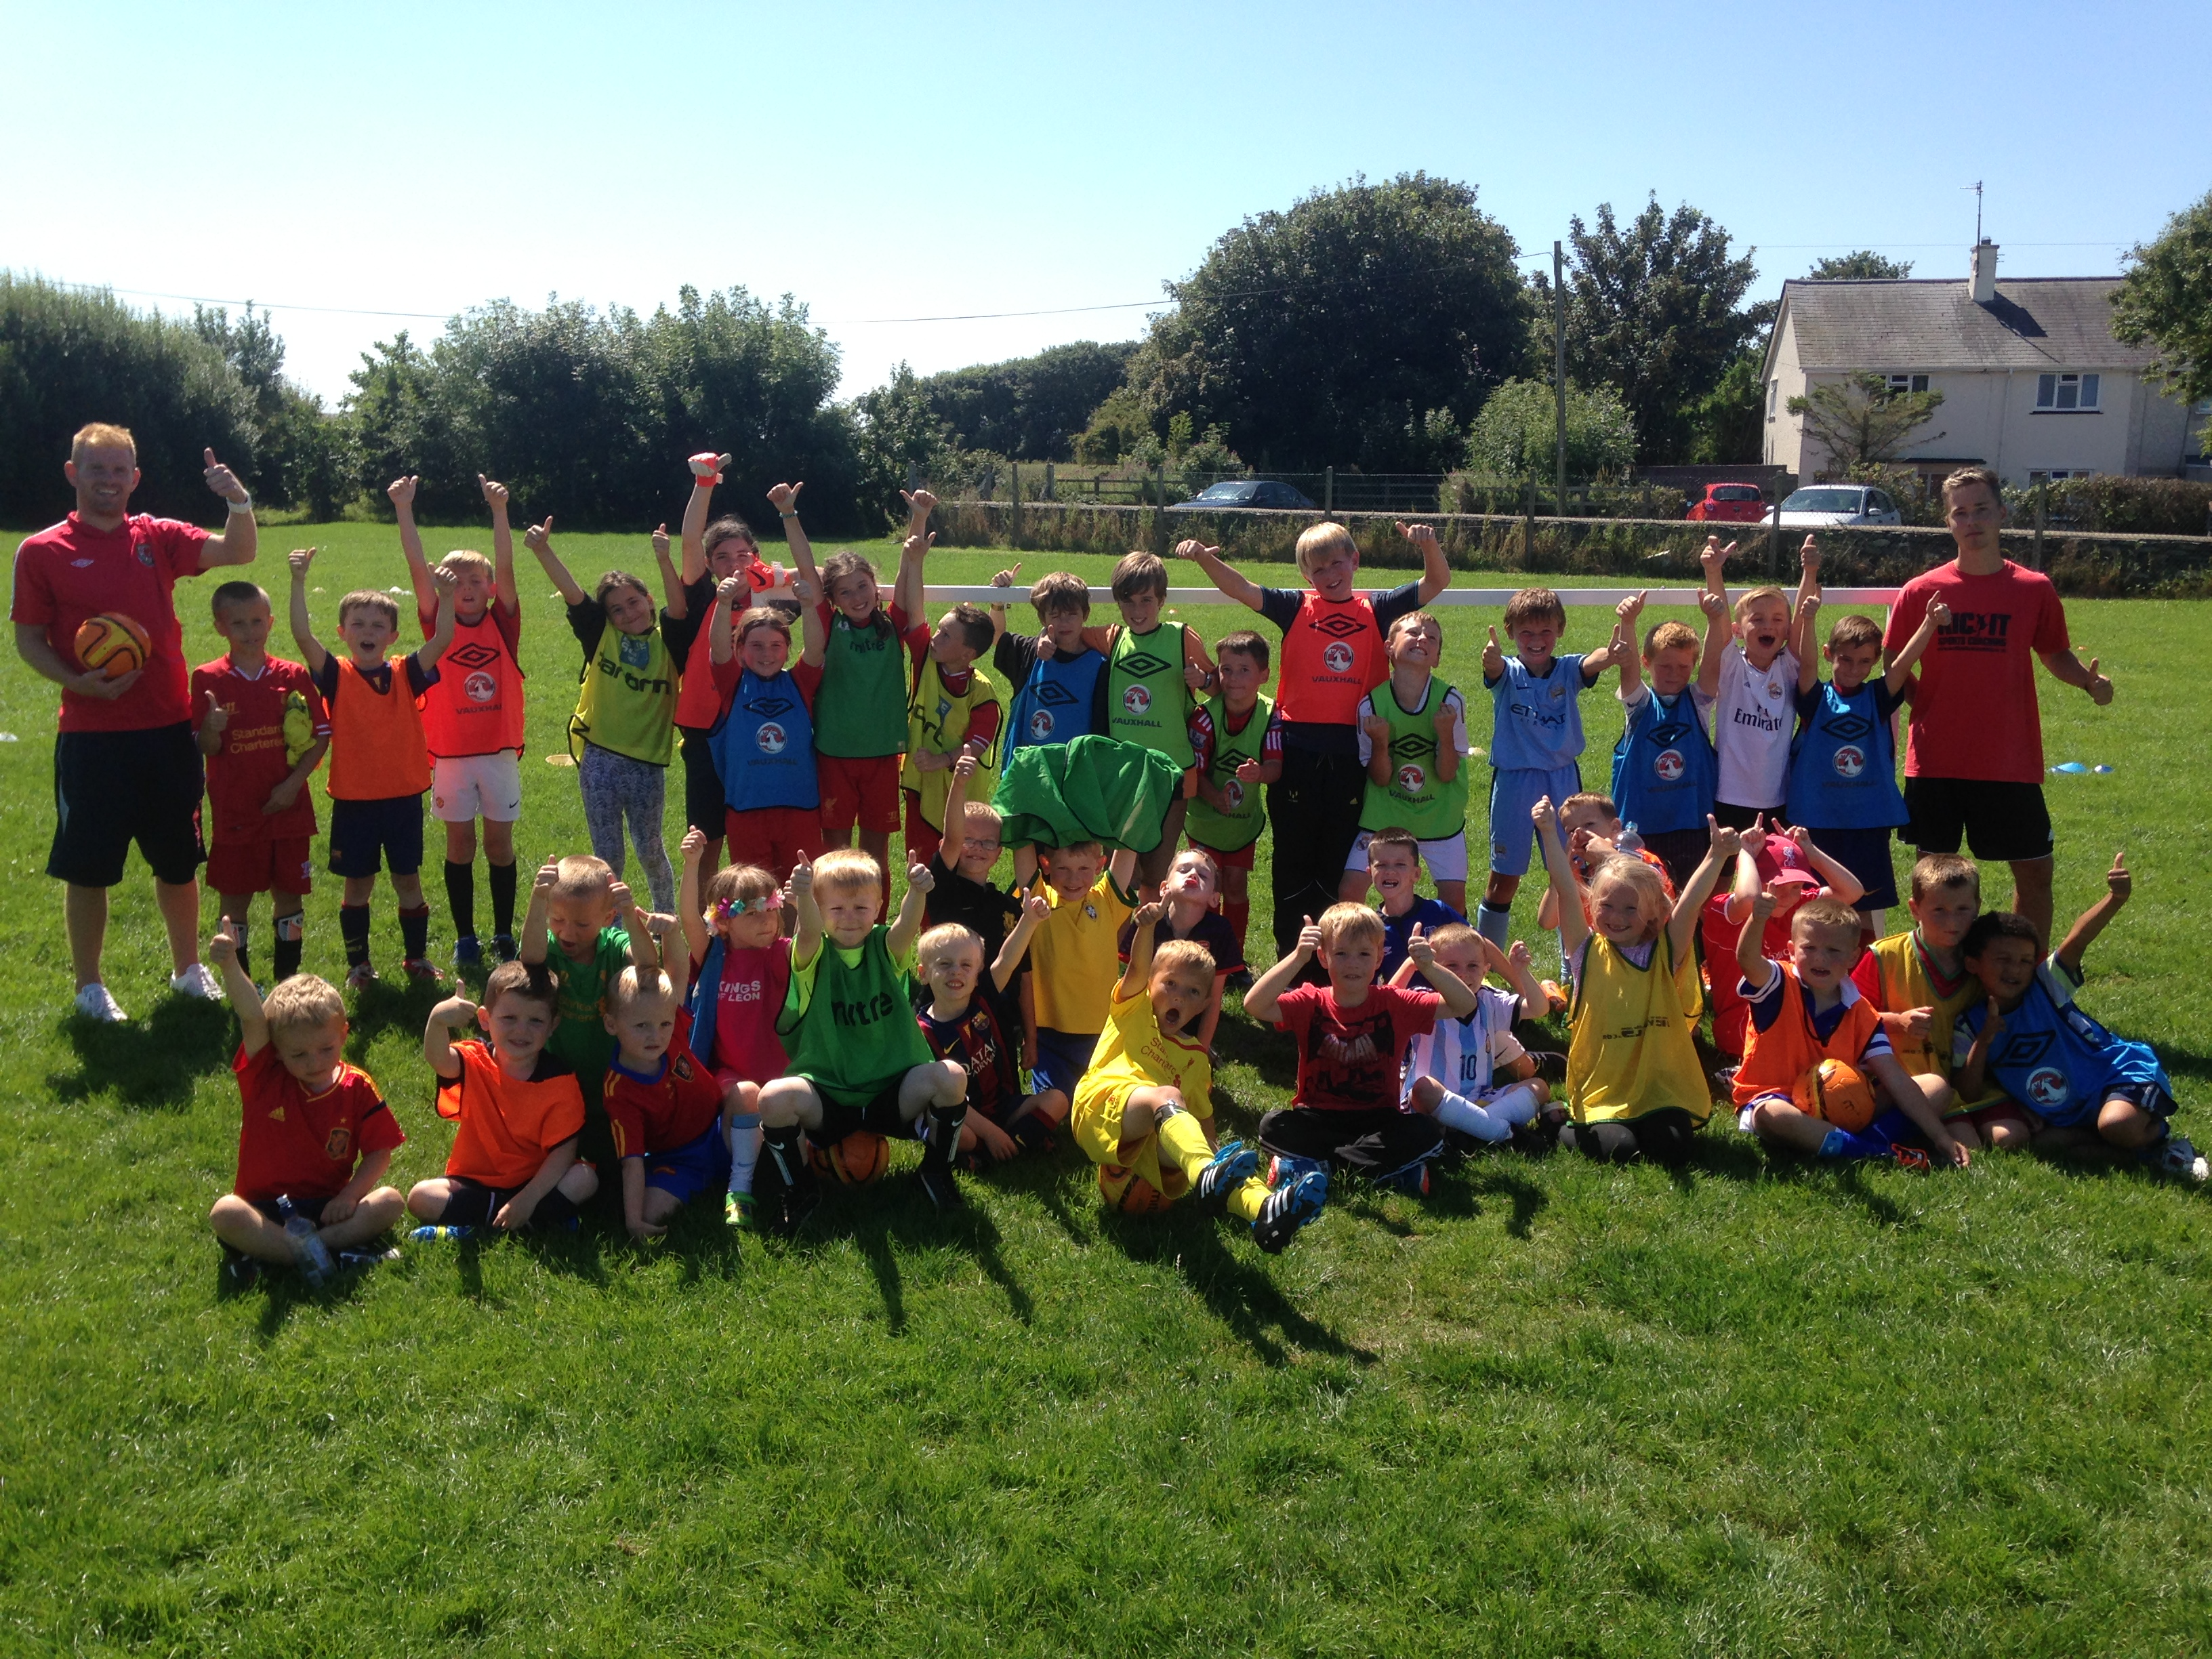 KICK IT Sports and Vauxhall bring football fever to North Wales